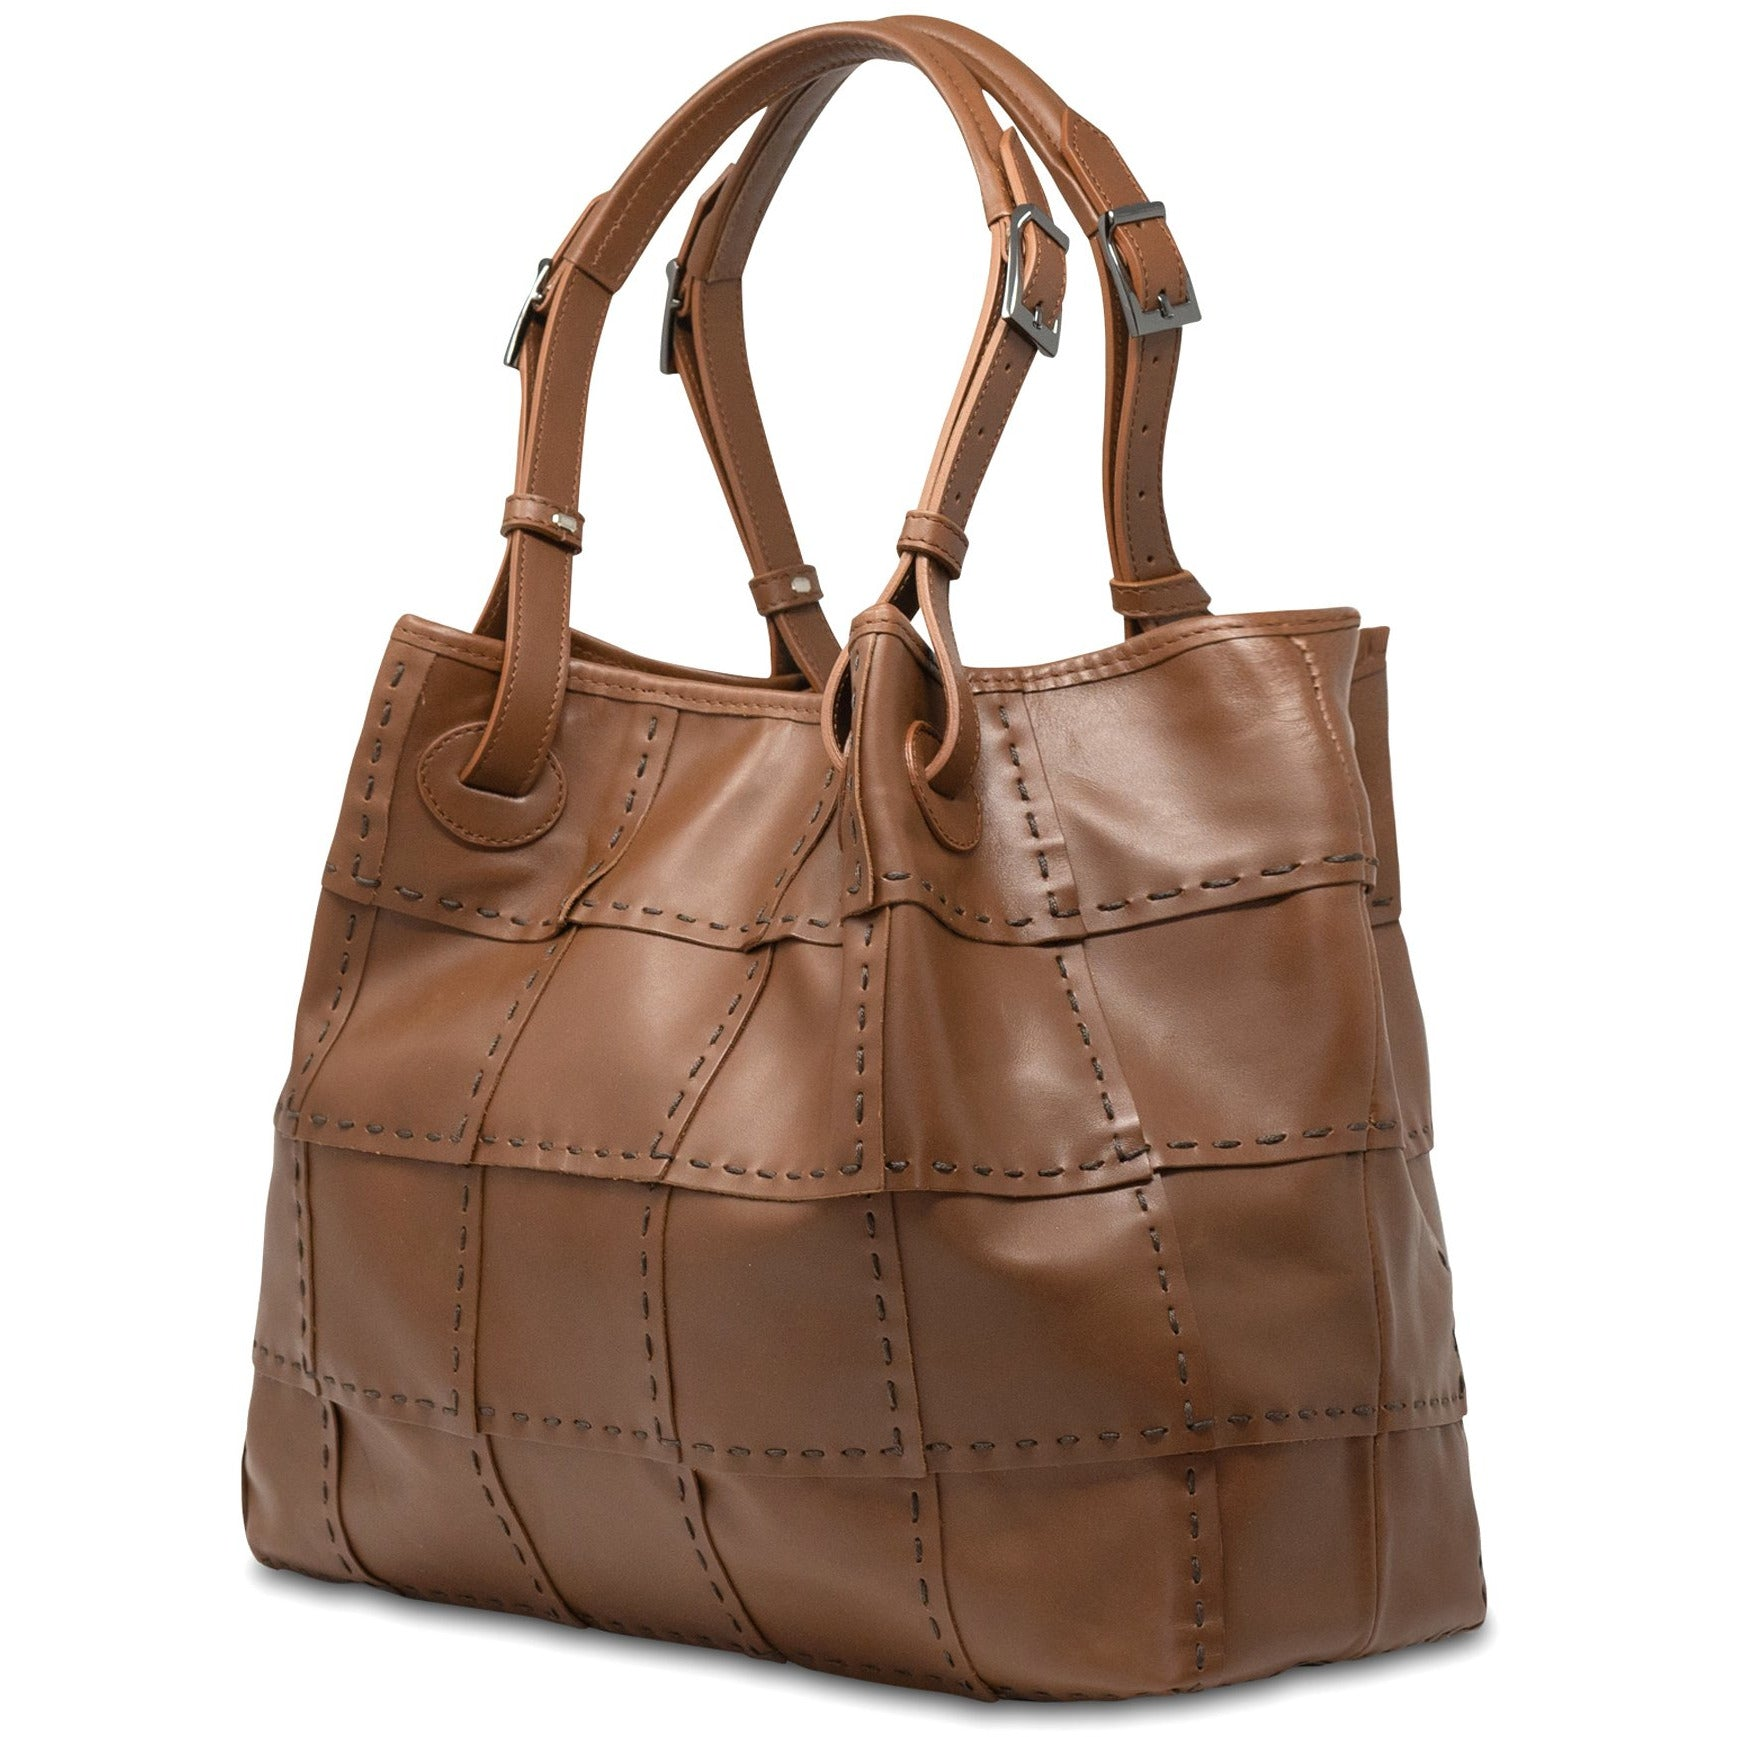 Alessia M Women Leather Shoulder Tote in Cuoio - Jennifer Tattanelli